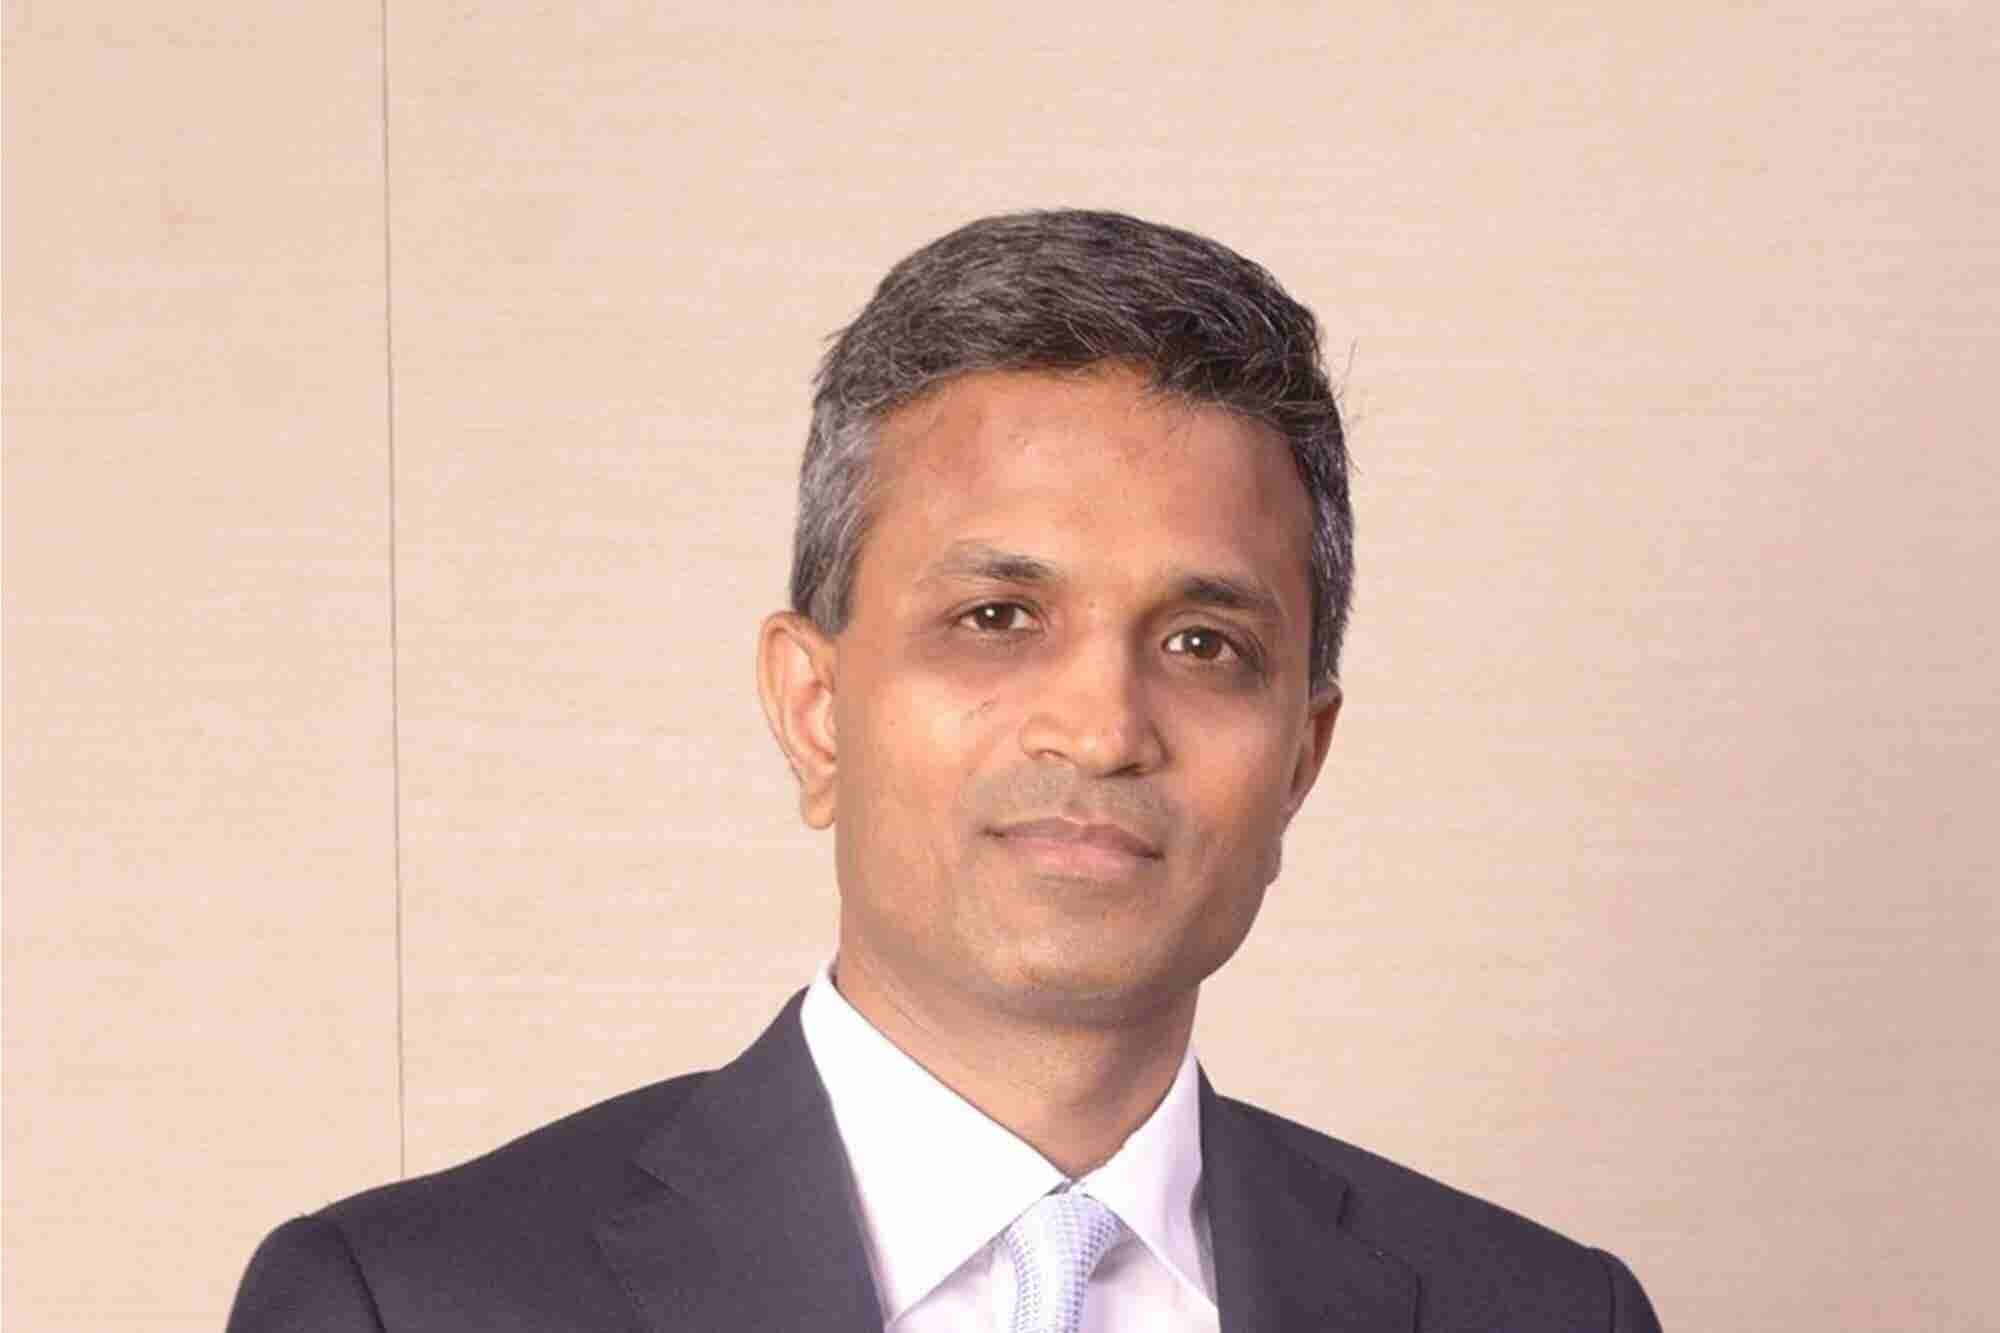 Technology Backed by Strong Regulation Can Help Digitalisation of Loans, Says Kotak Mahindra Bank's SME Head